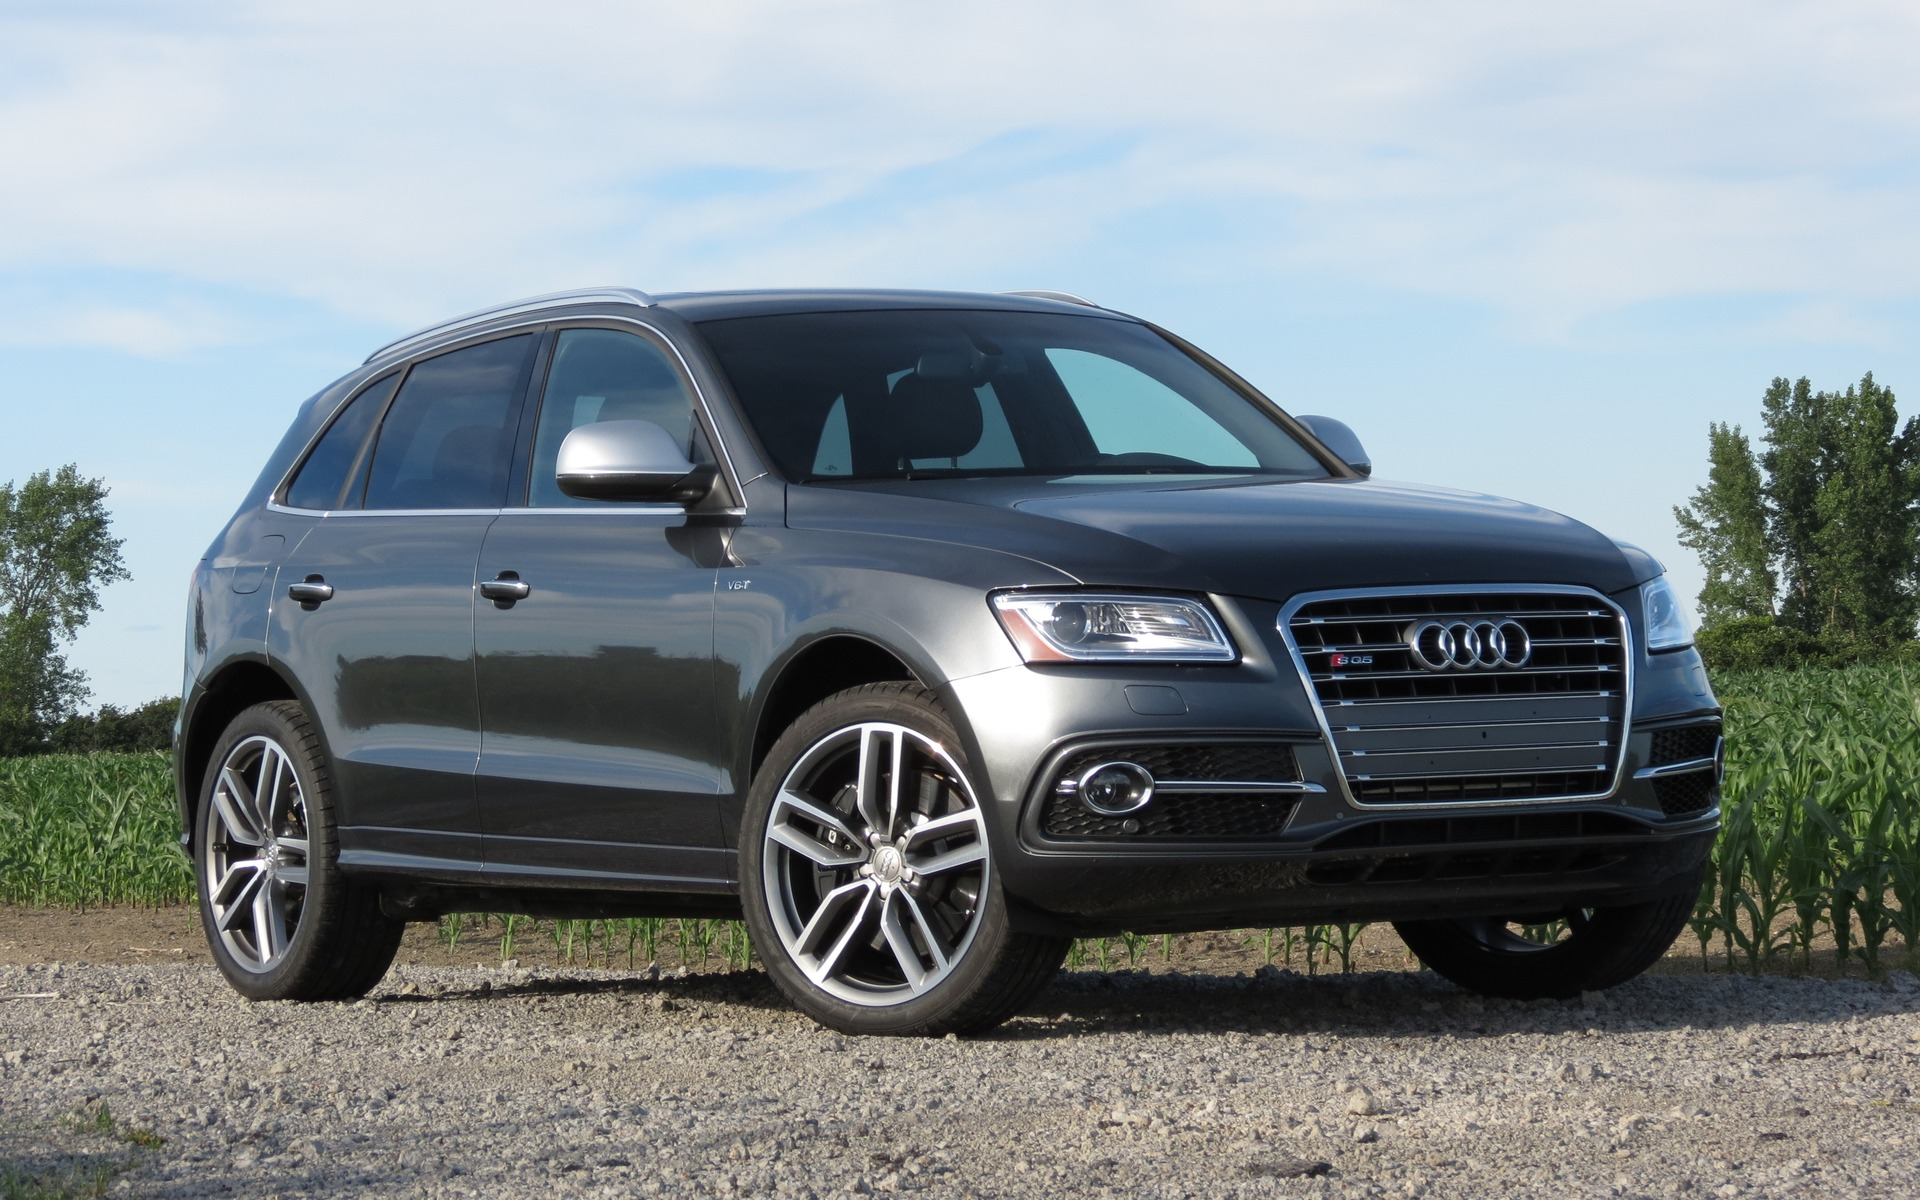 2016 audi q5 photos 1 4 the car guide. Black Bedroom Furniture Sets. Home Design Ideas